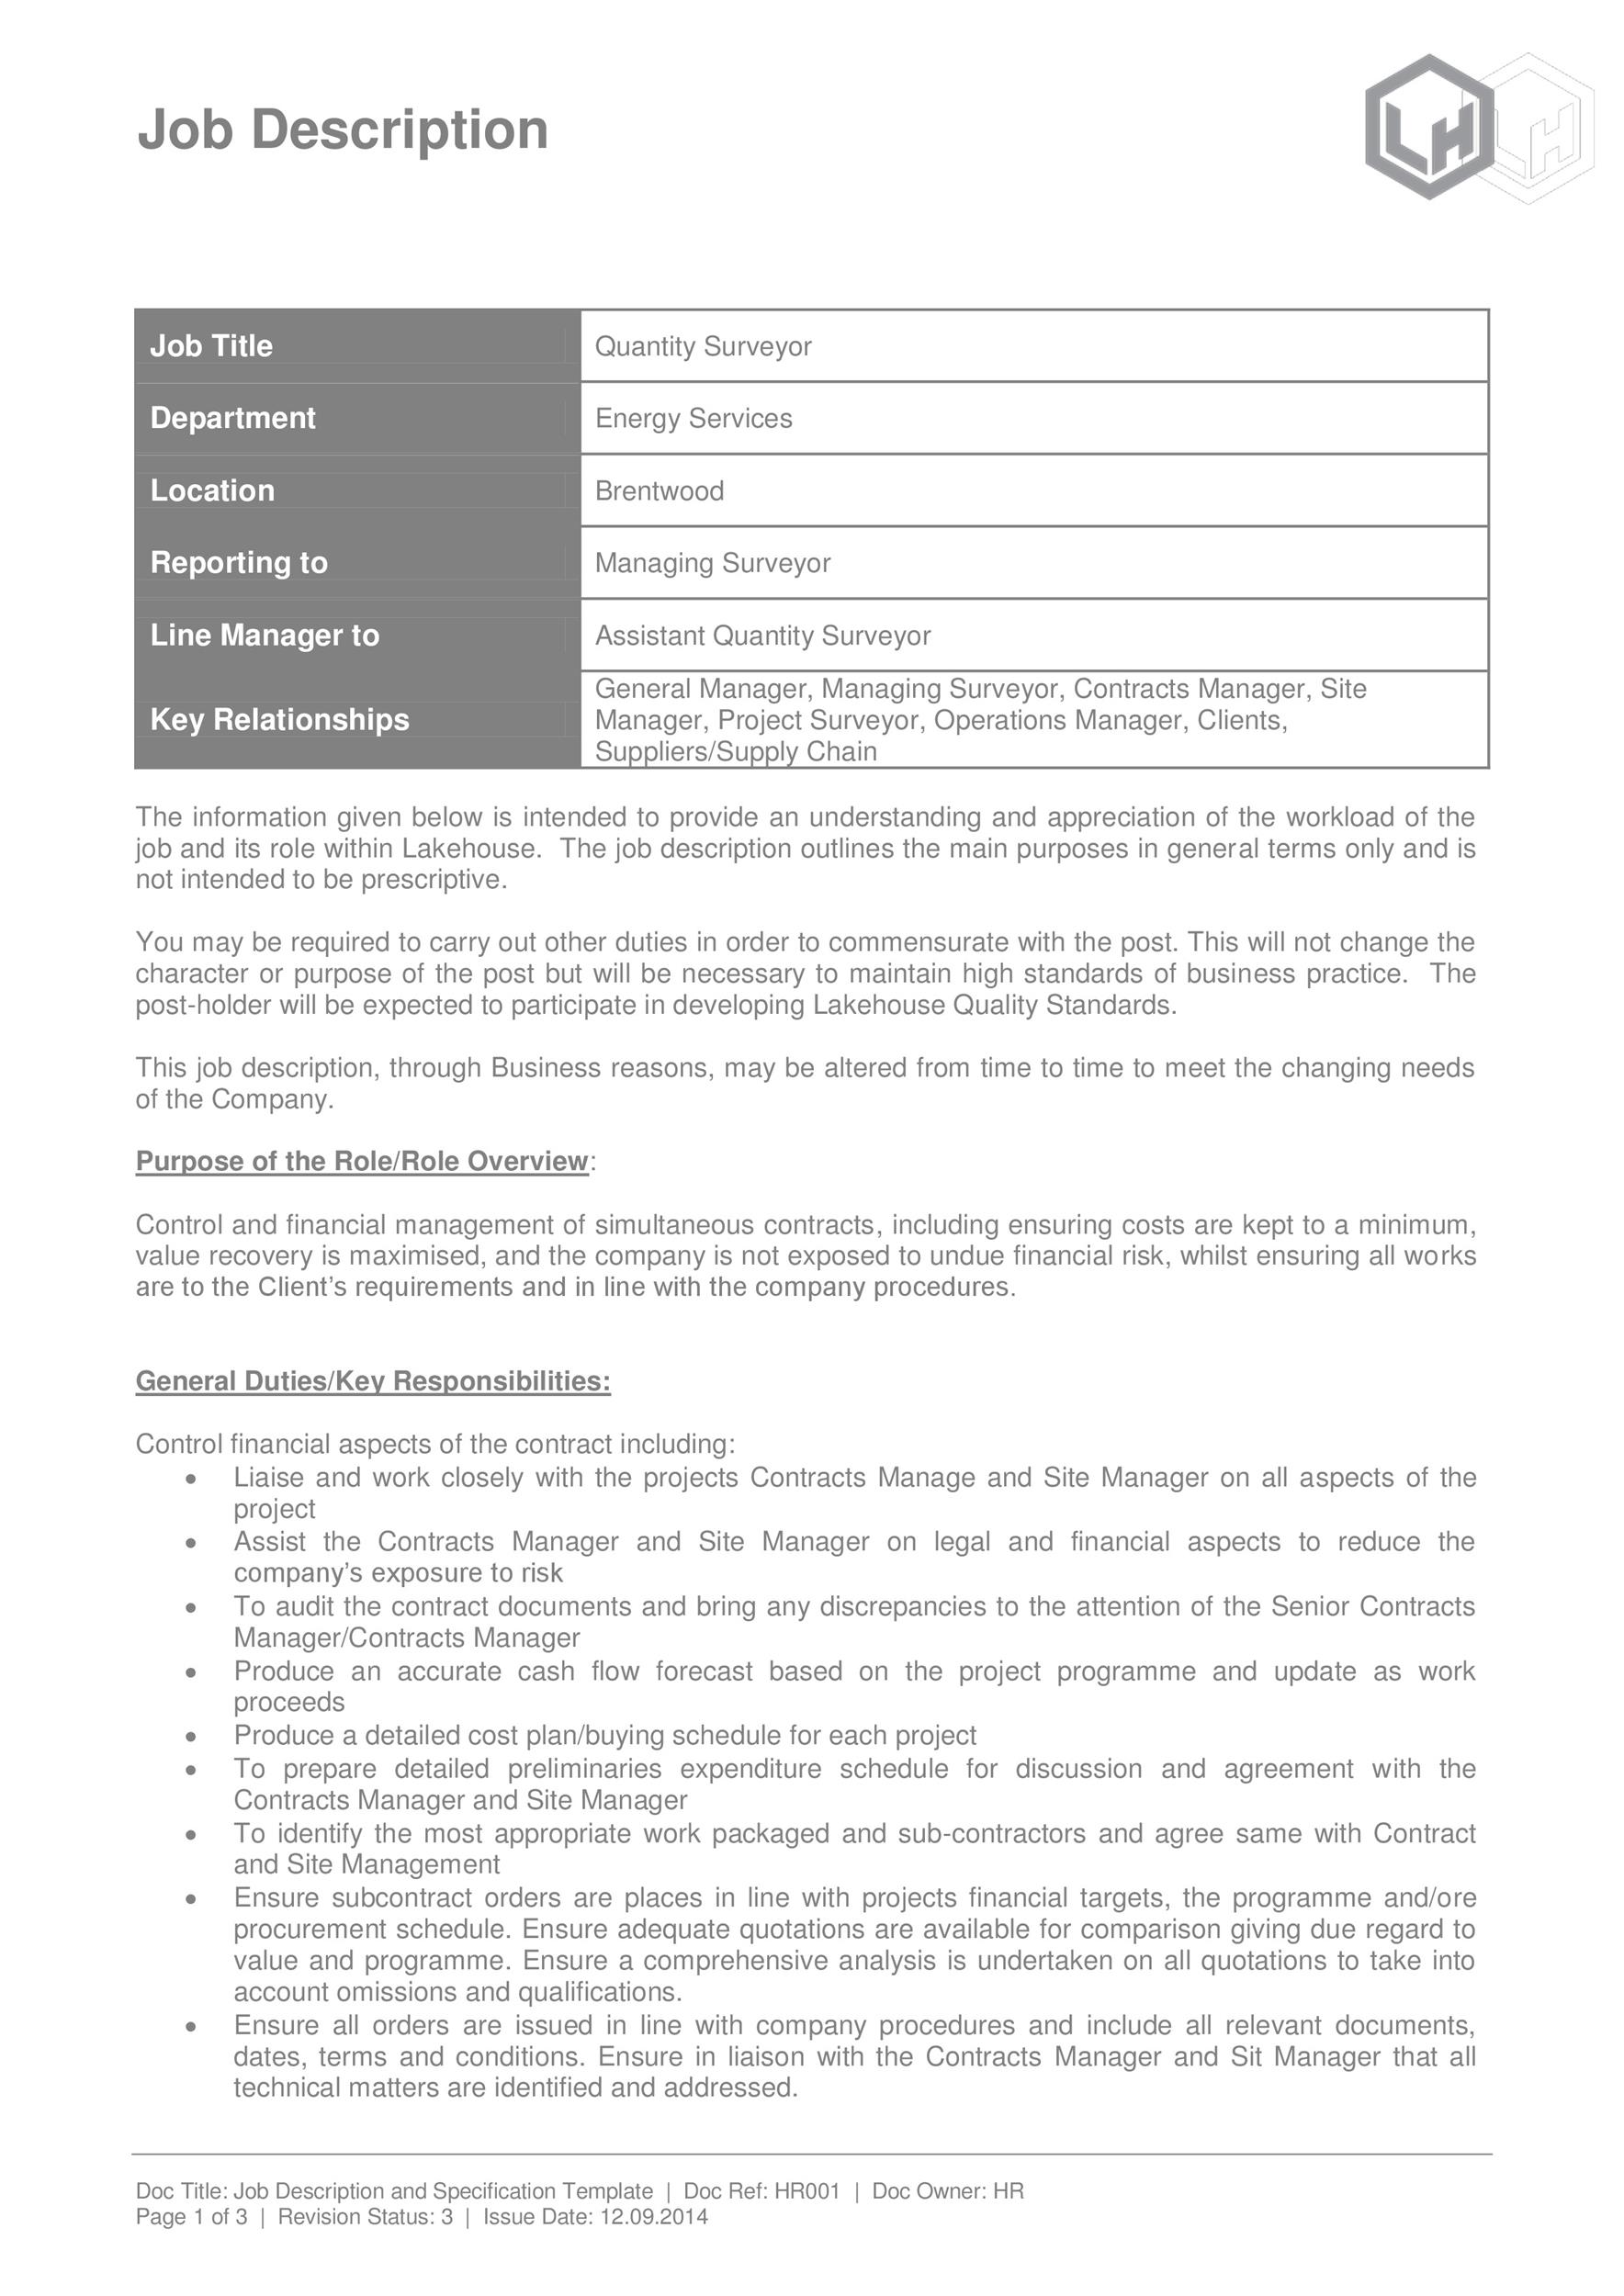 Job Description Template 13